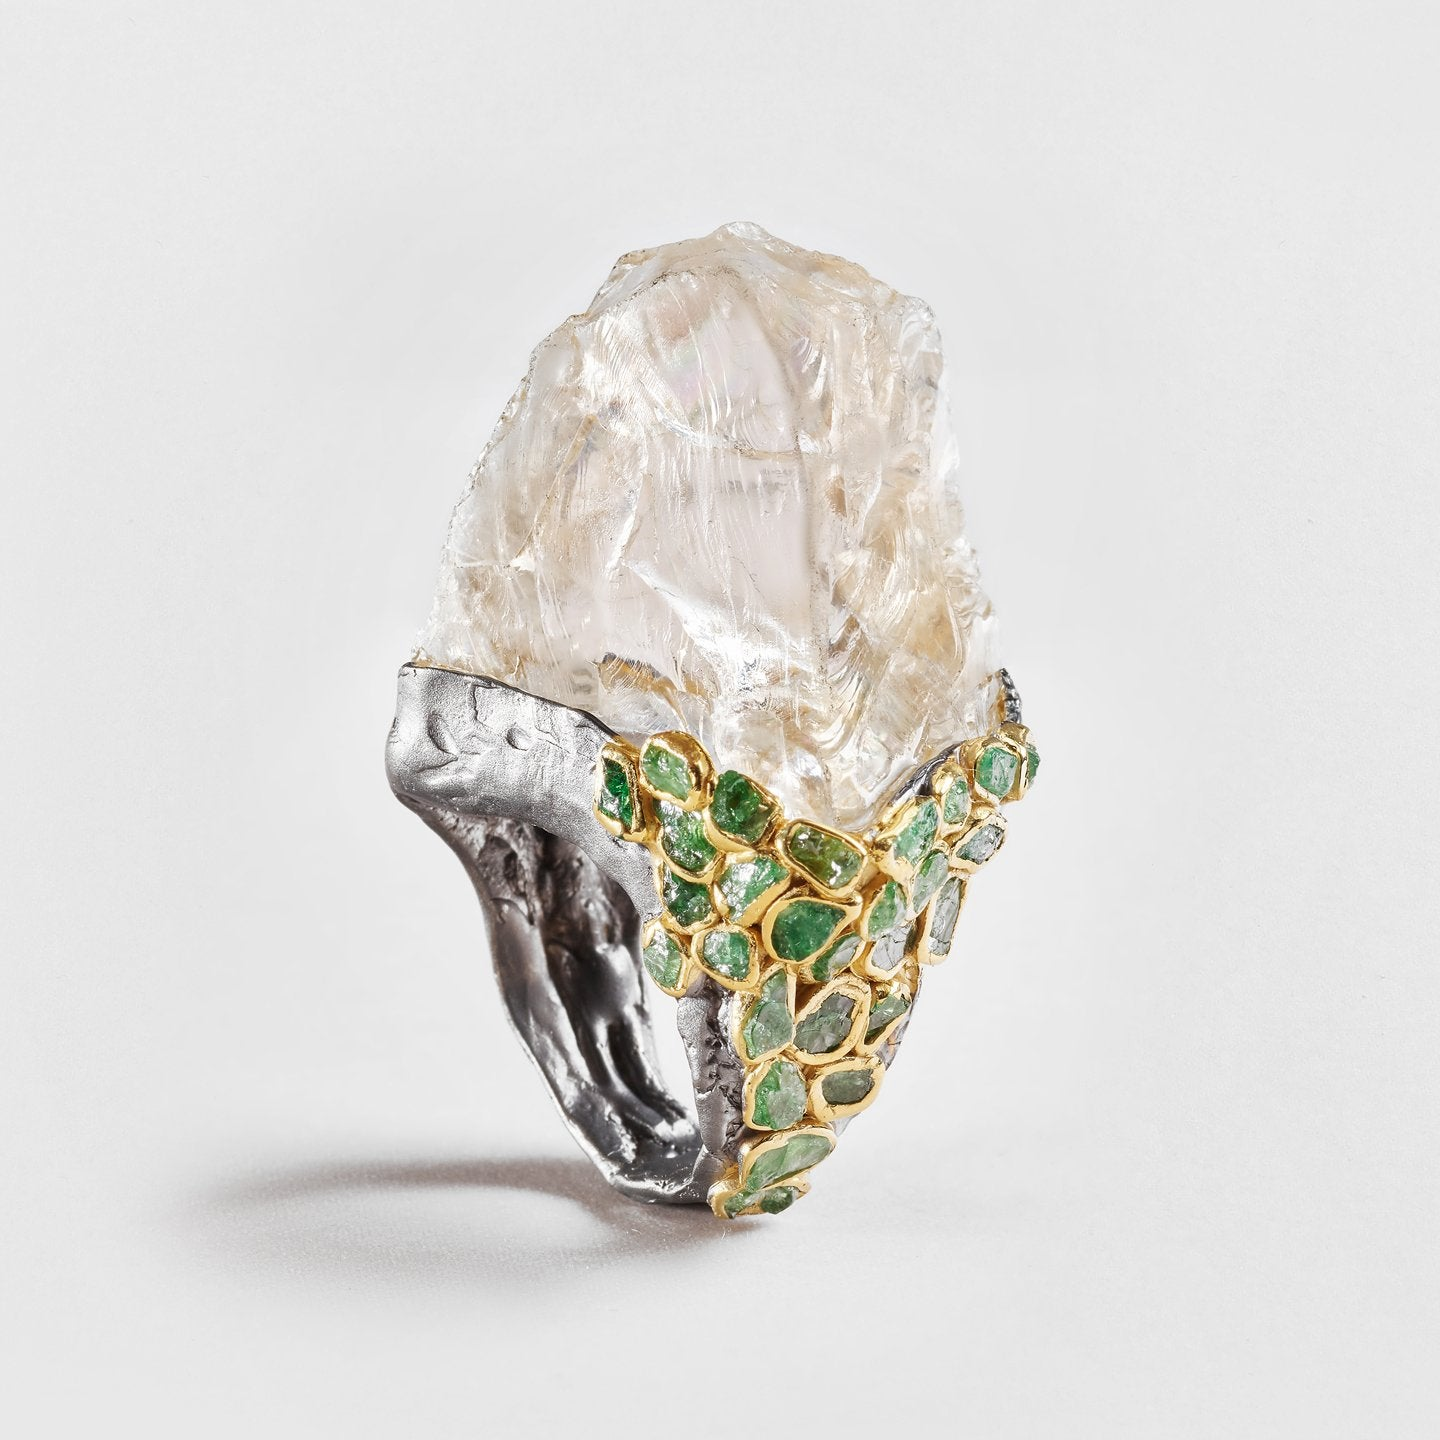 Dareia Quartz and Tsavorite Ring